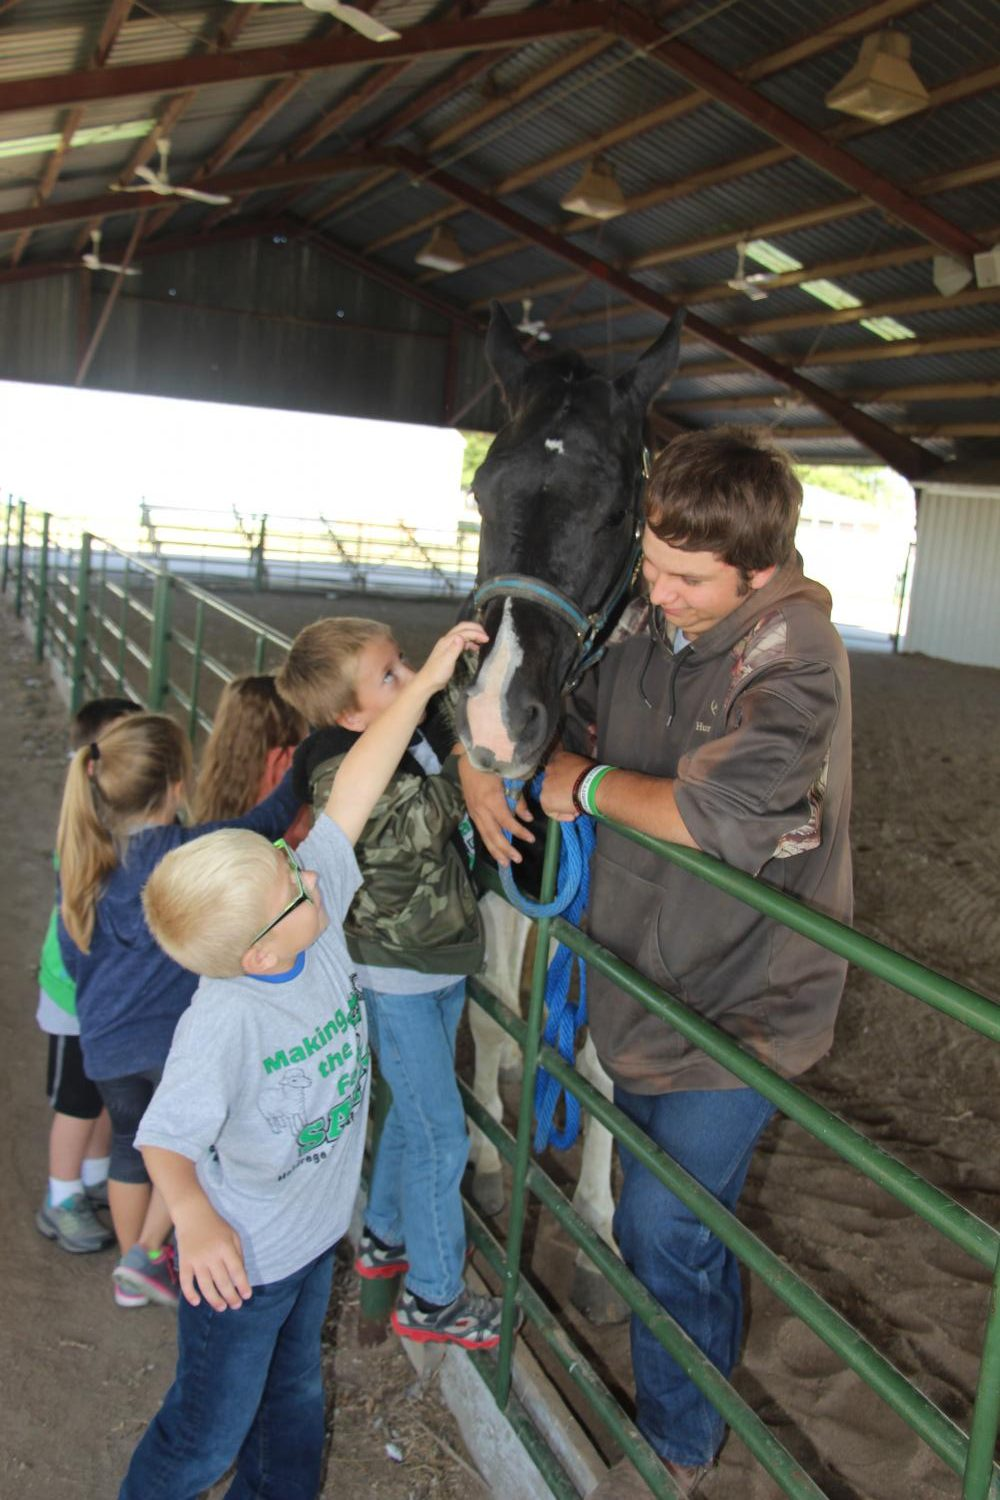 FFA member, Tyelar Samuelson holds onto a horse as an elementary student pets it.